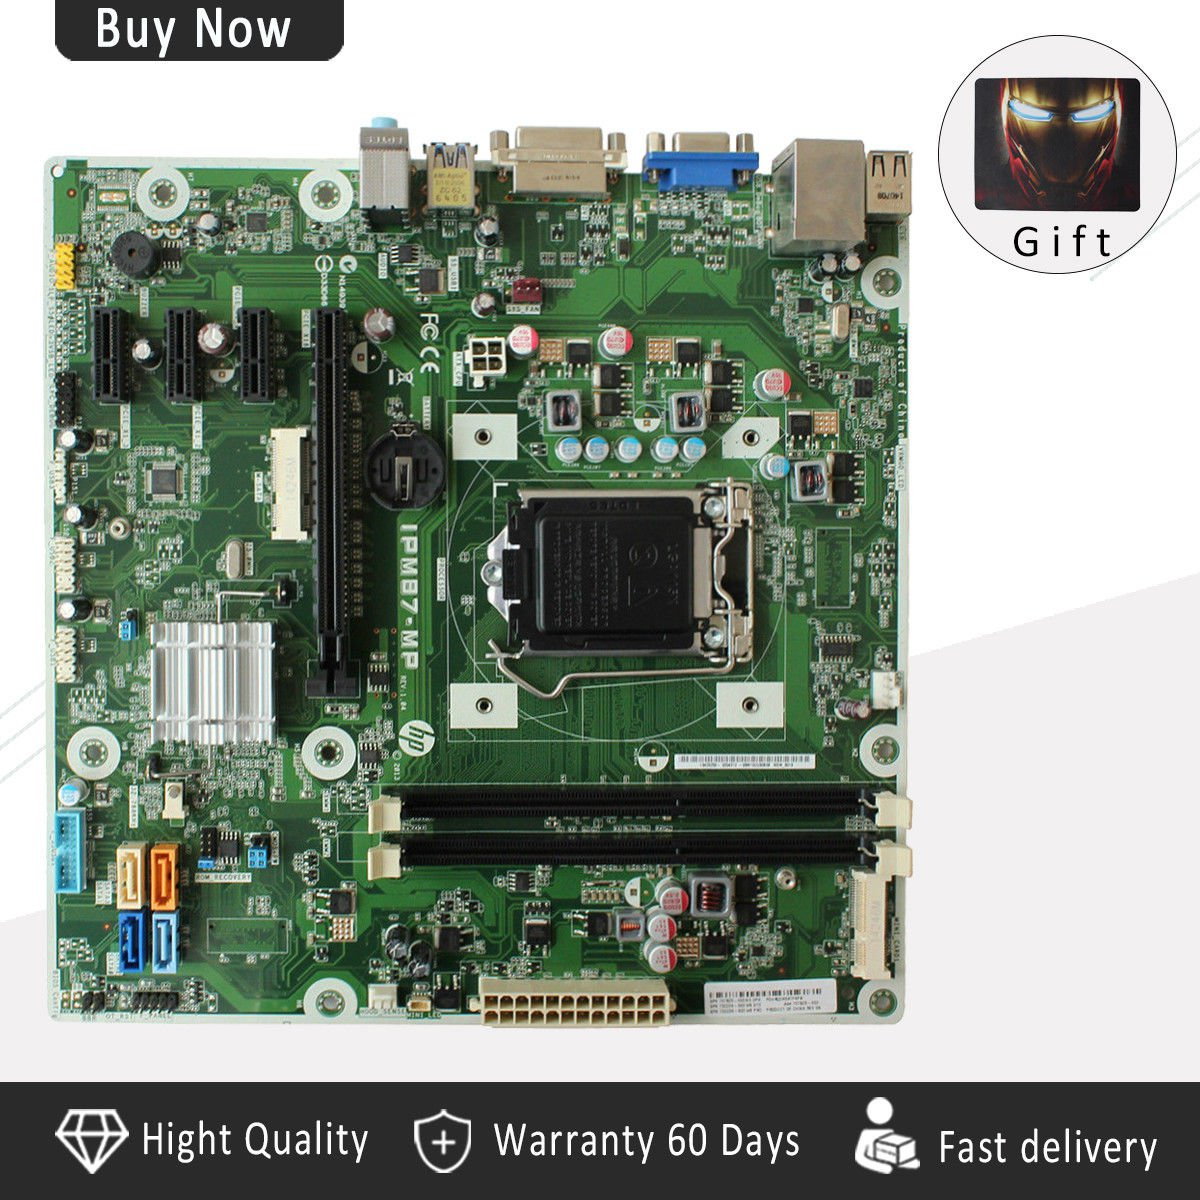 HP MEMPHIS-S IPM87-MP REV:1.04 Motherboard 707825-003 732239-503 Gift a Mouse-c